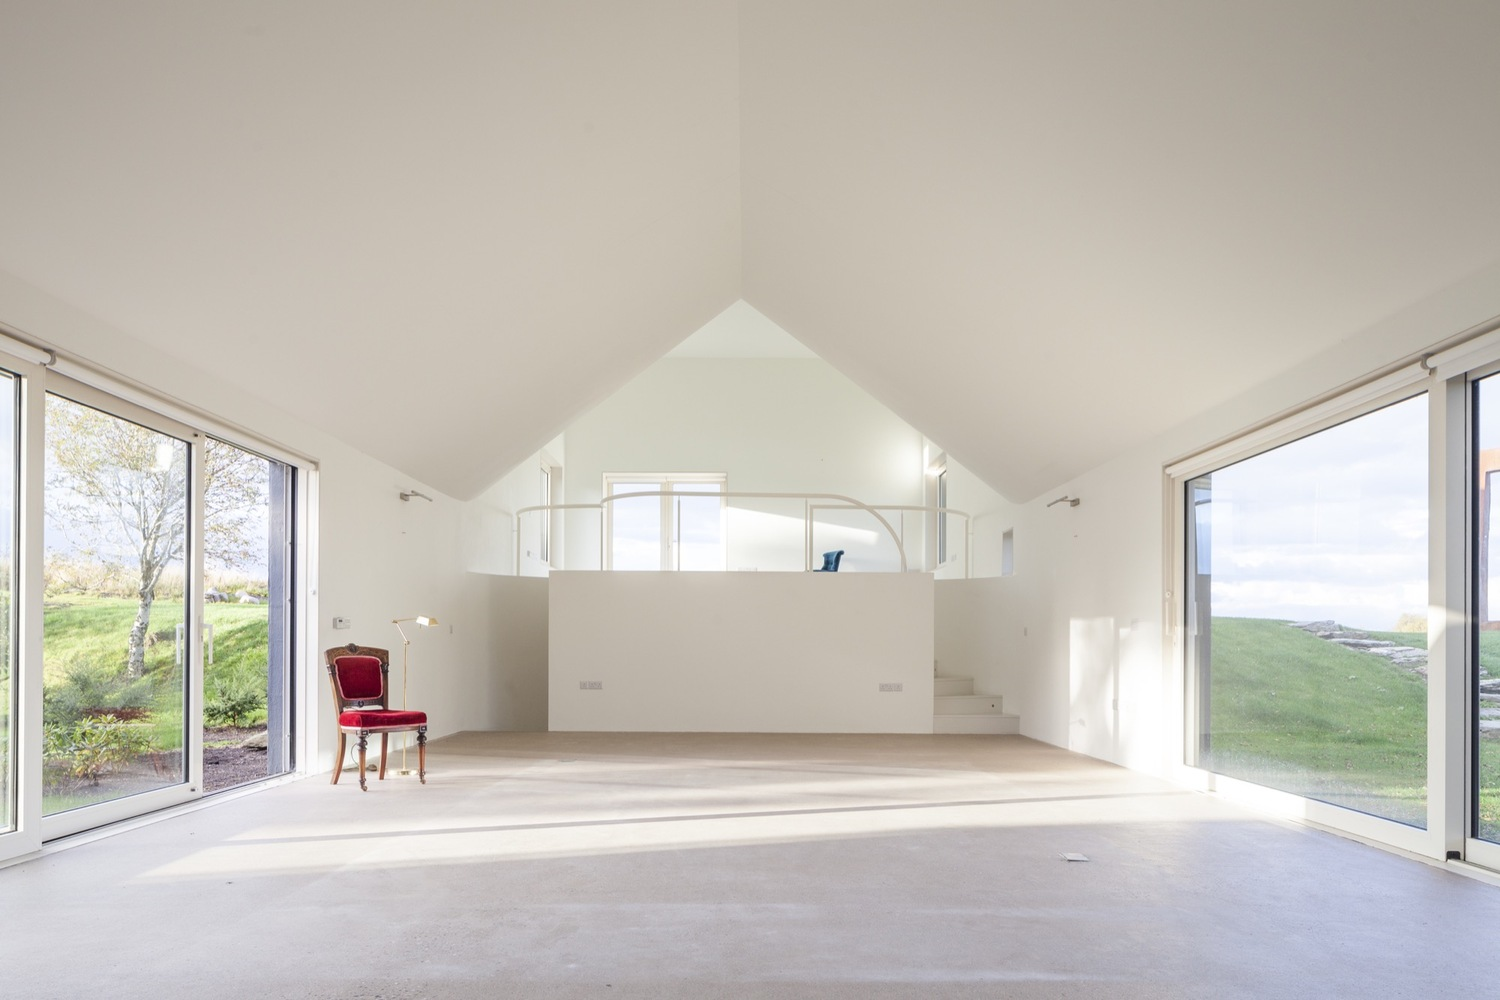 5_house-in-ireland_markus-schietsch-architekten_inspirationist